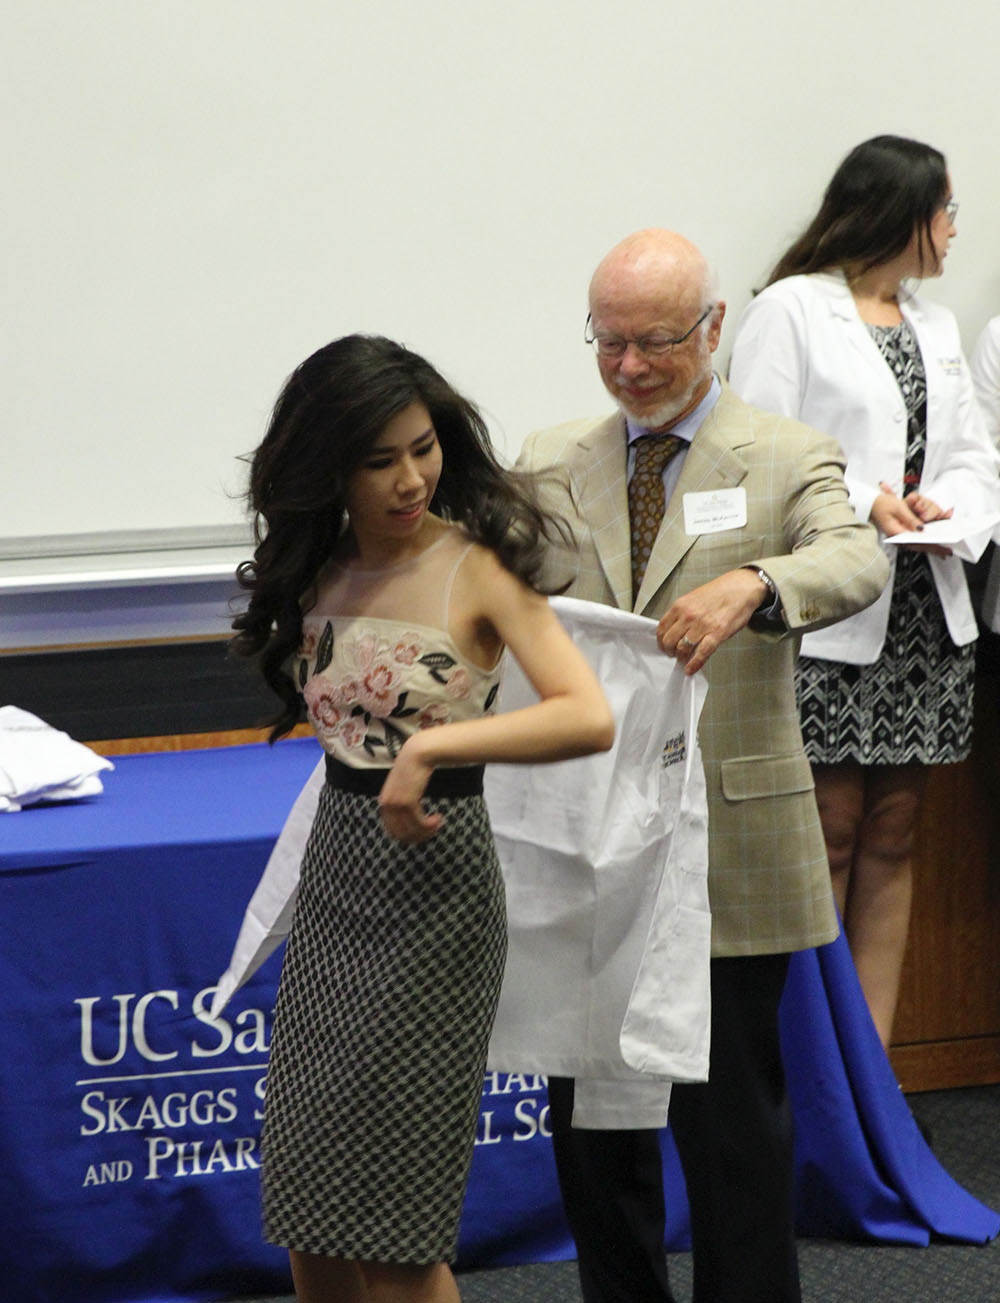 White Coat Ceremony - invictus